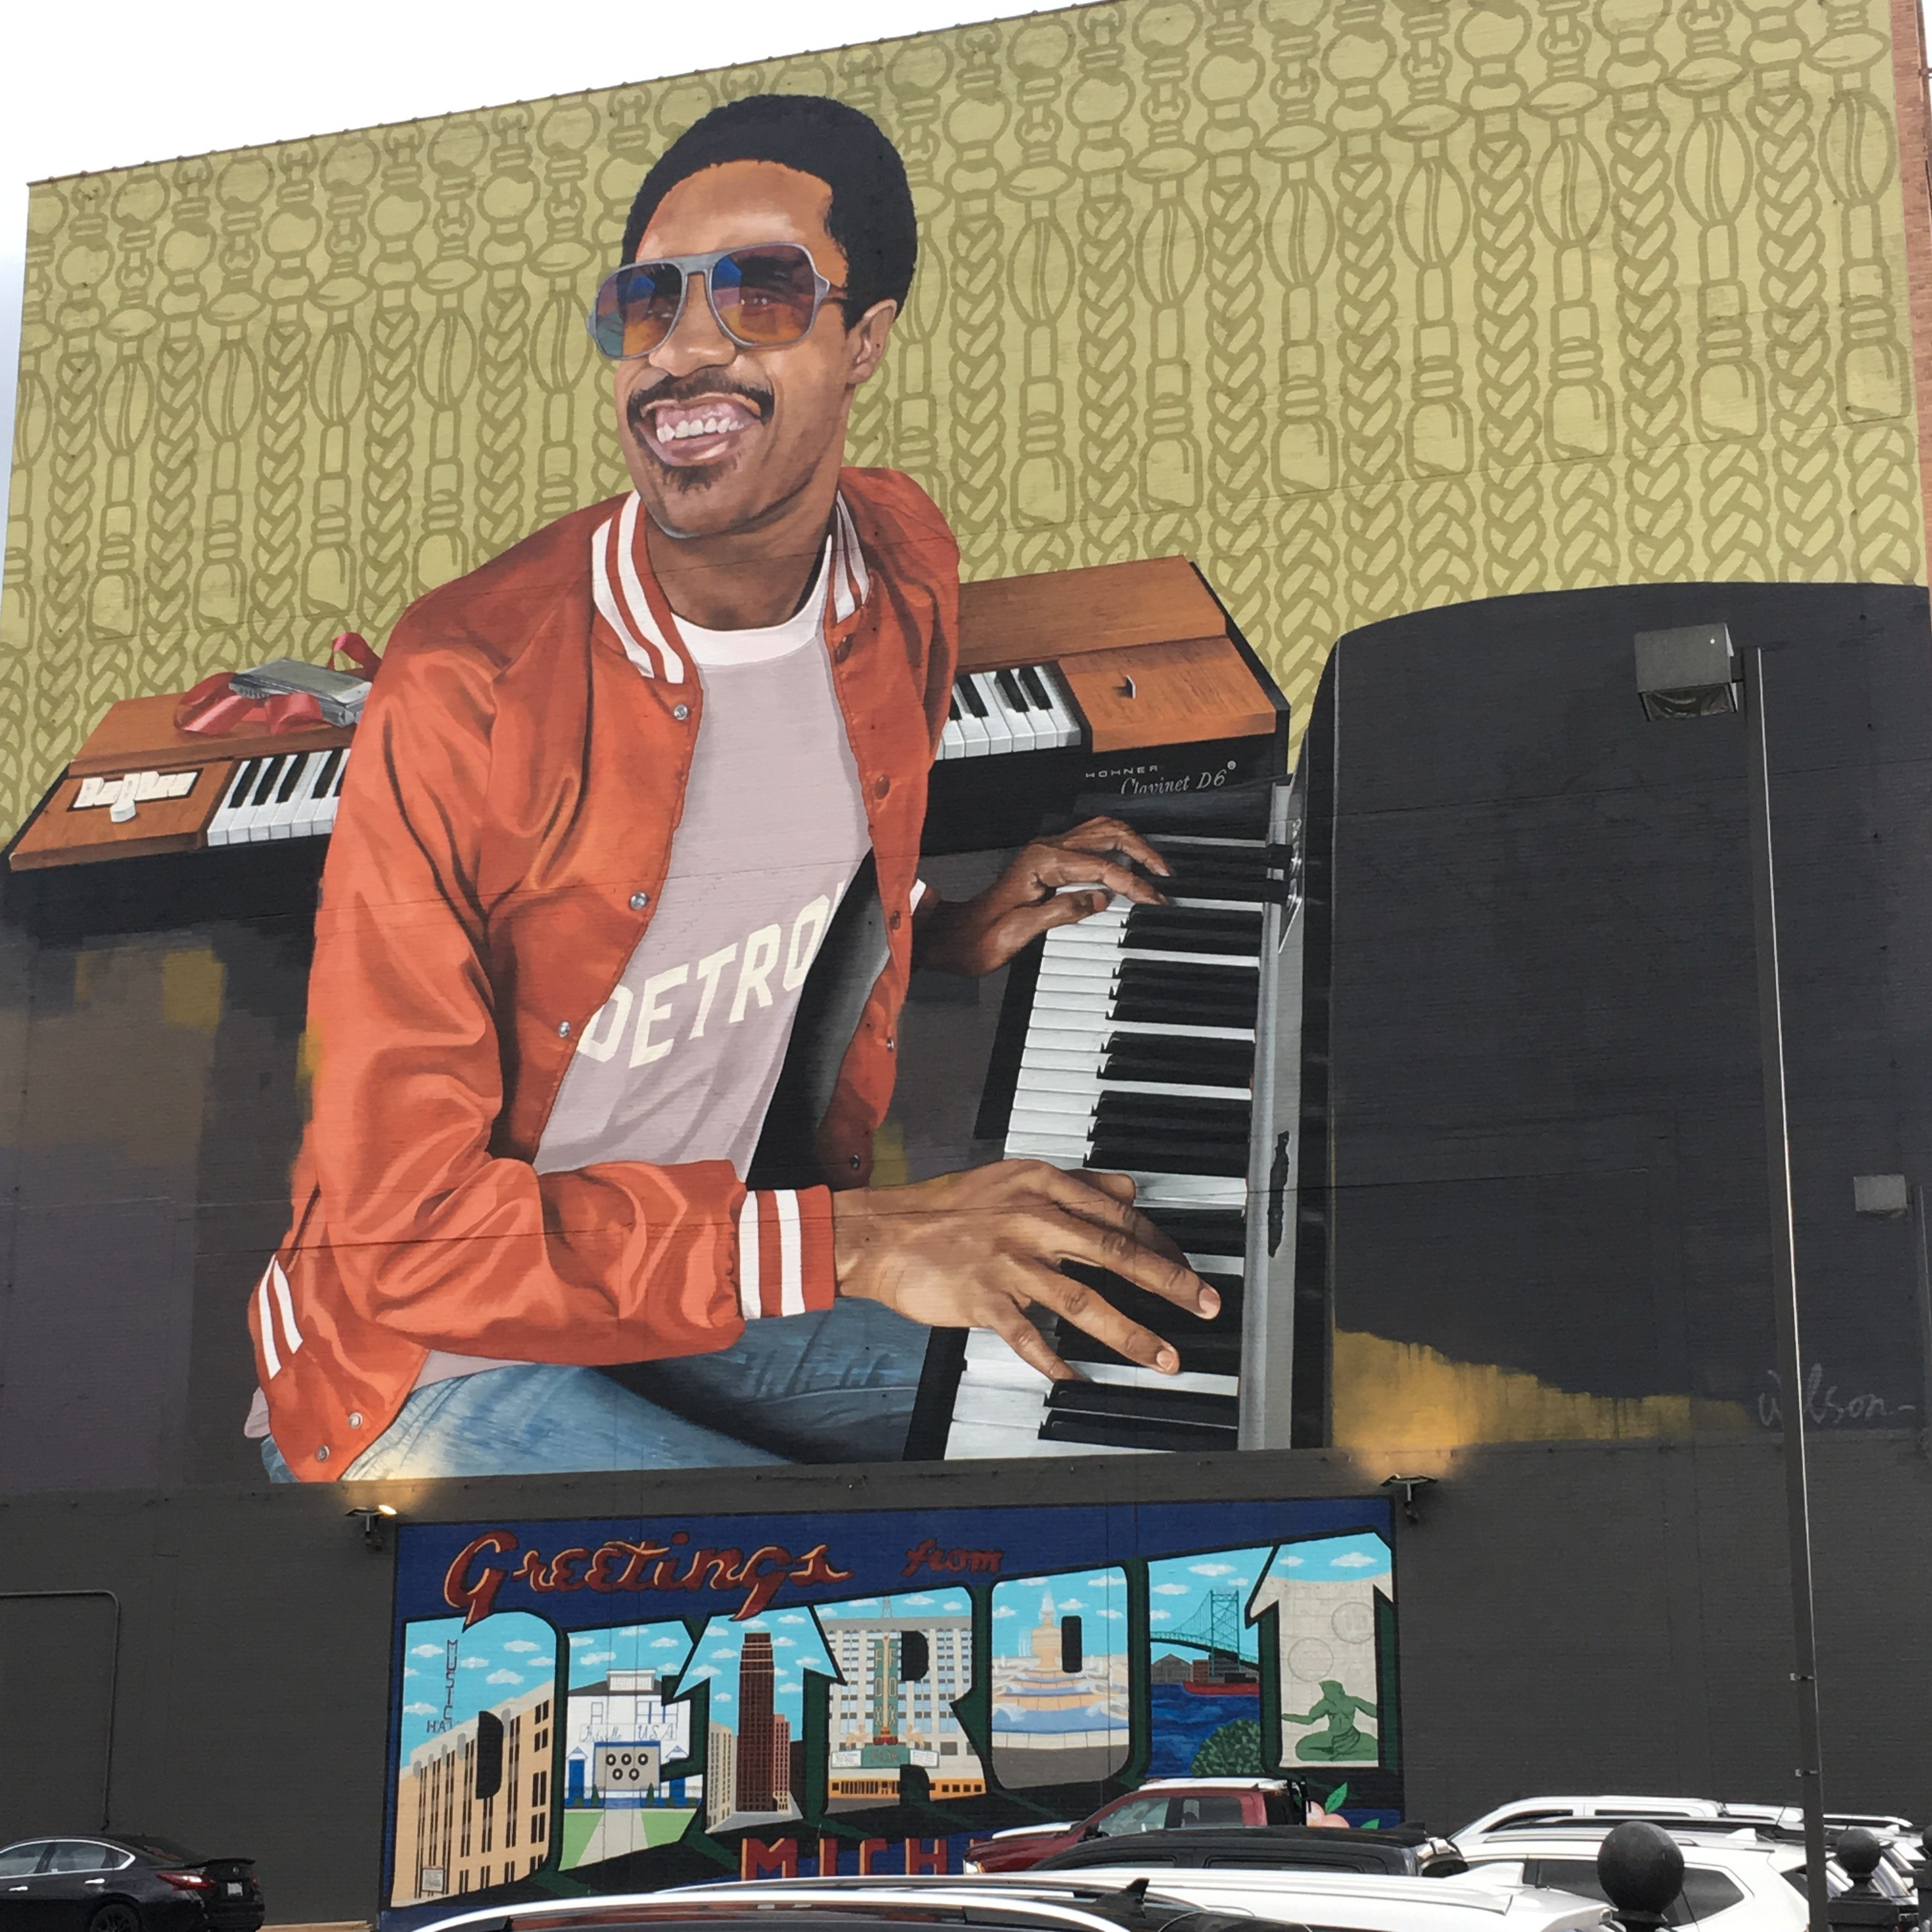 A mural of Stevie Wonder in downtown Detroit.